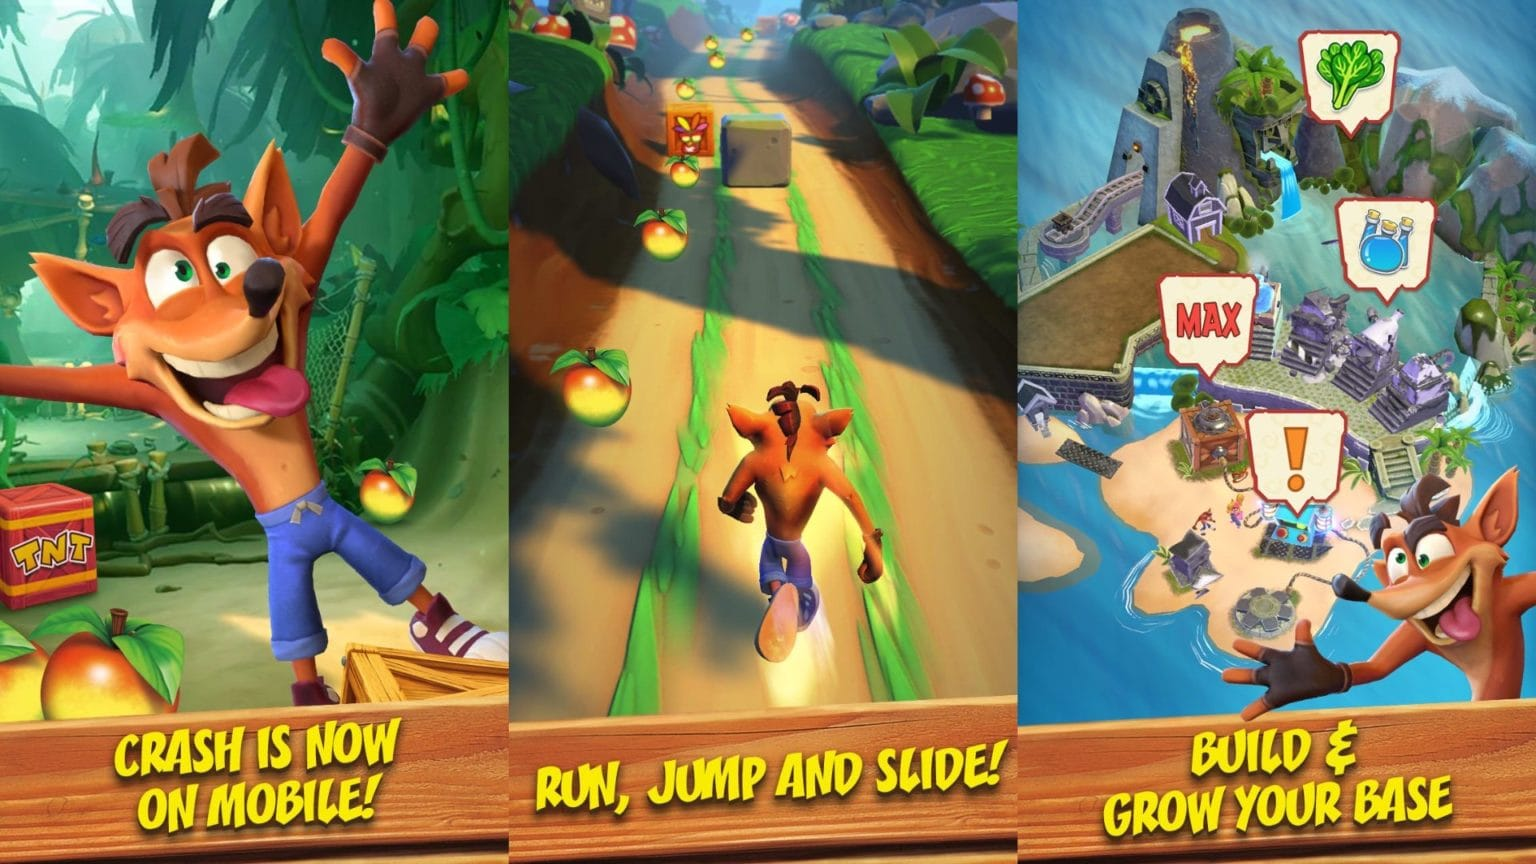 Crash Bandicoot is getting his first new mobile game in 10 years